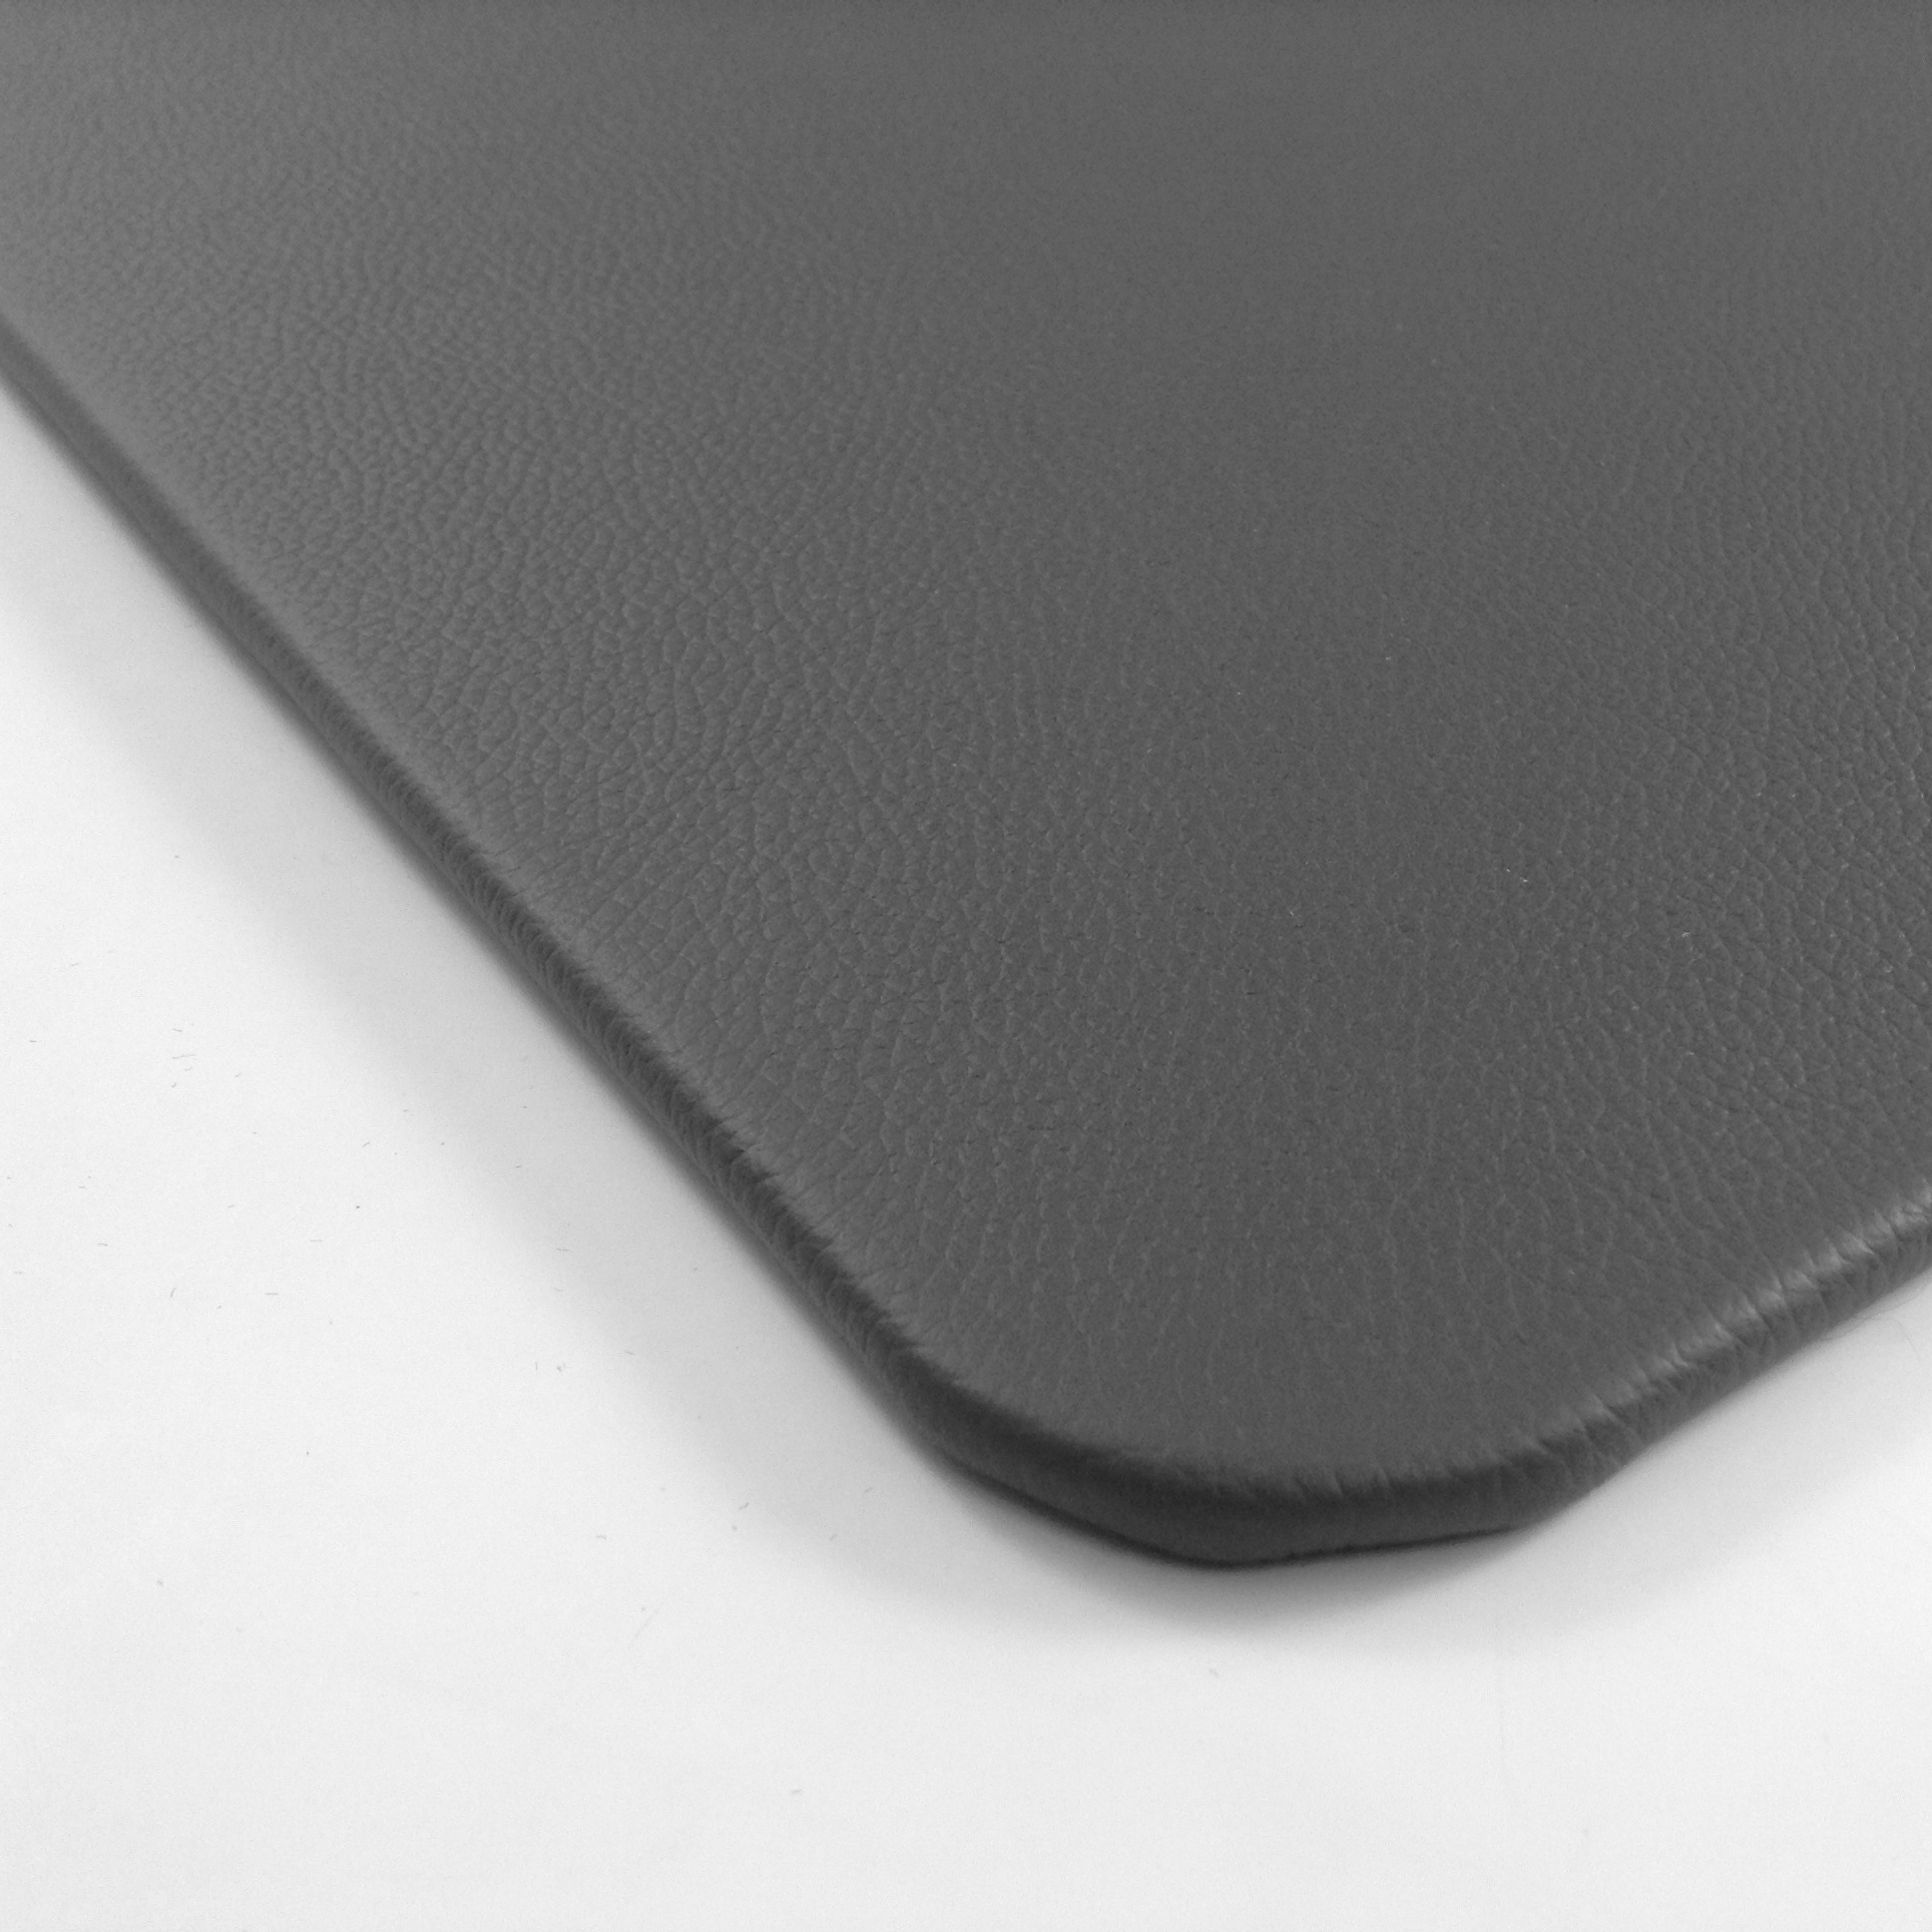 Awesome Grey Desk Pad With White Leather